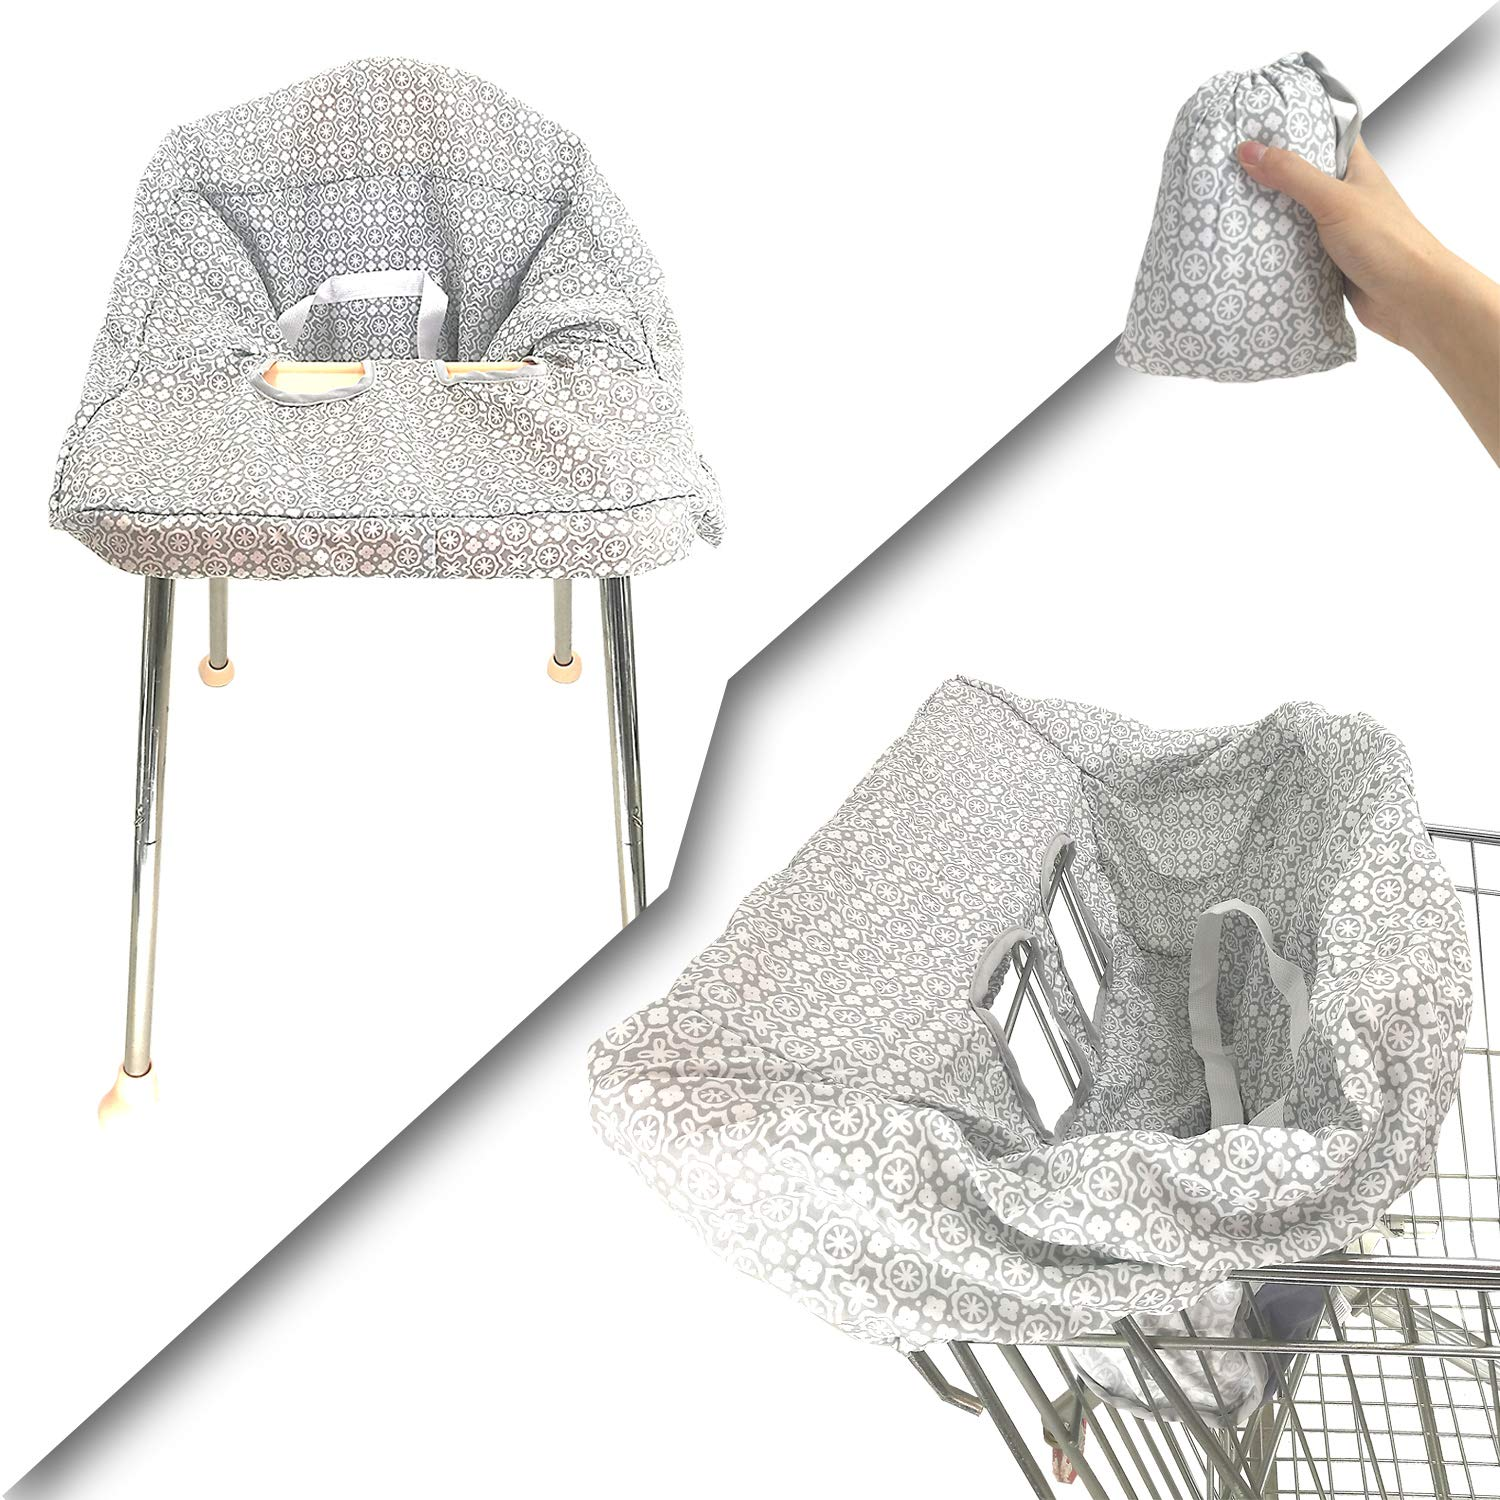 Waterproof 2-in-1 Shopping Cart & Baby High Chair Seat Covers with Portable Carry Bag | Machine Washable | Handy to Carry